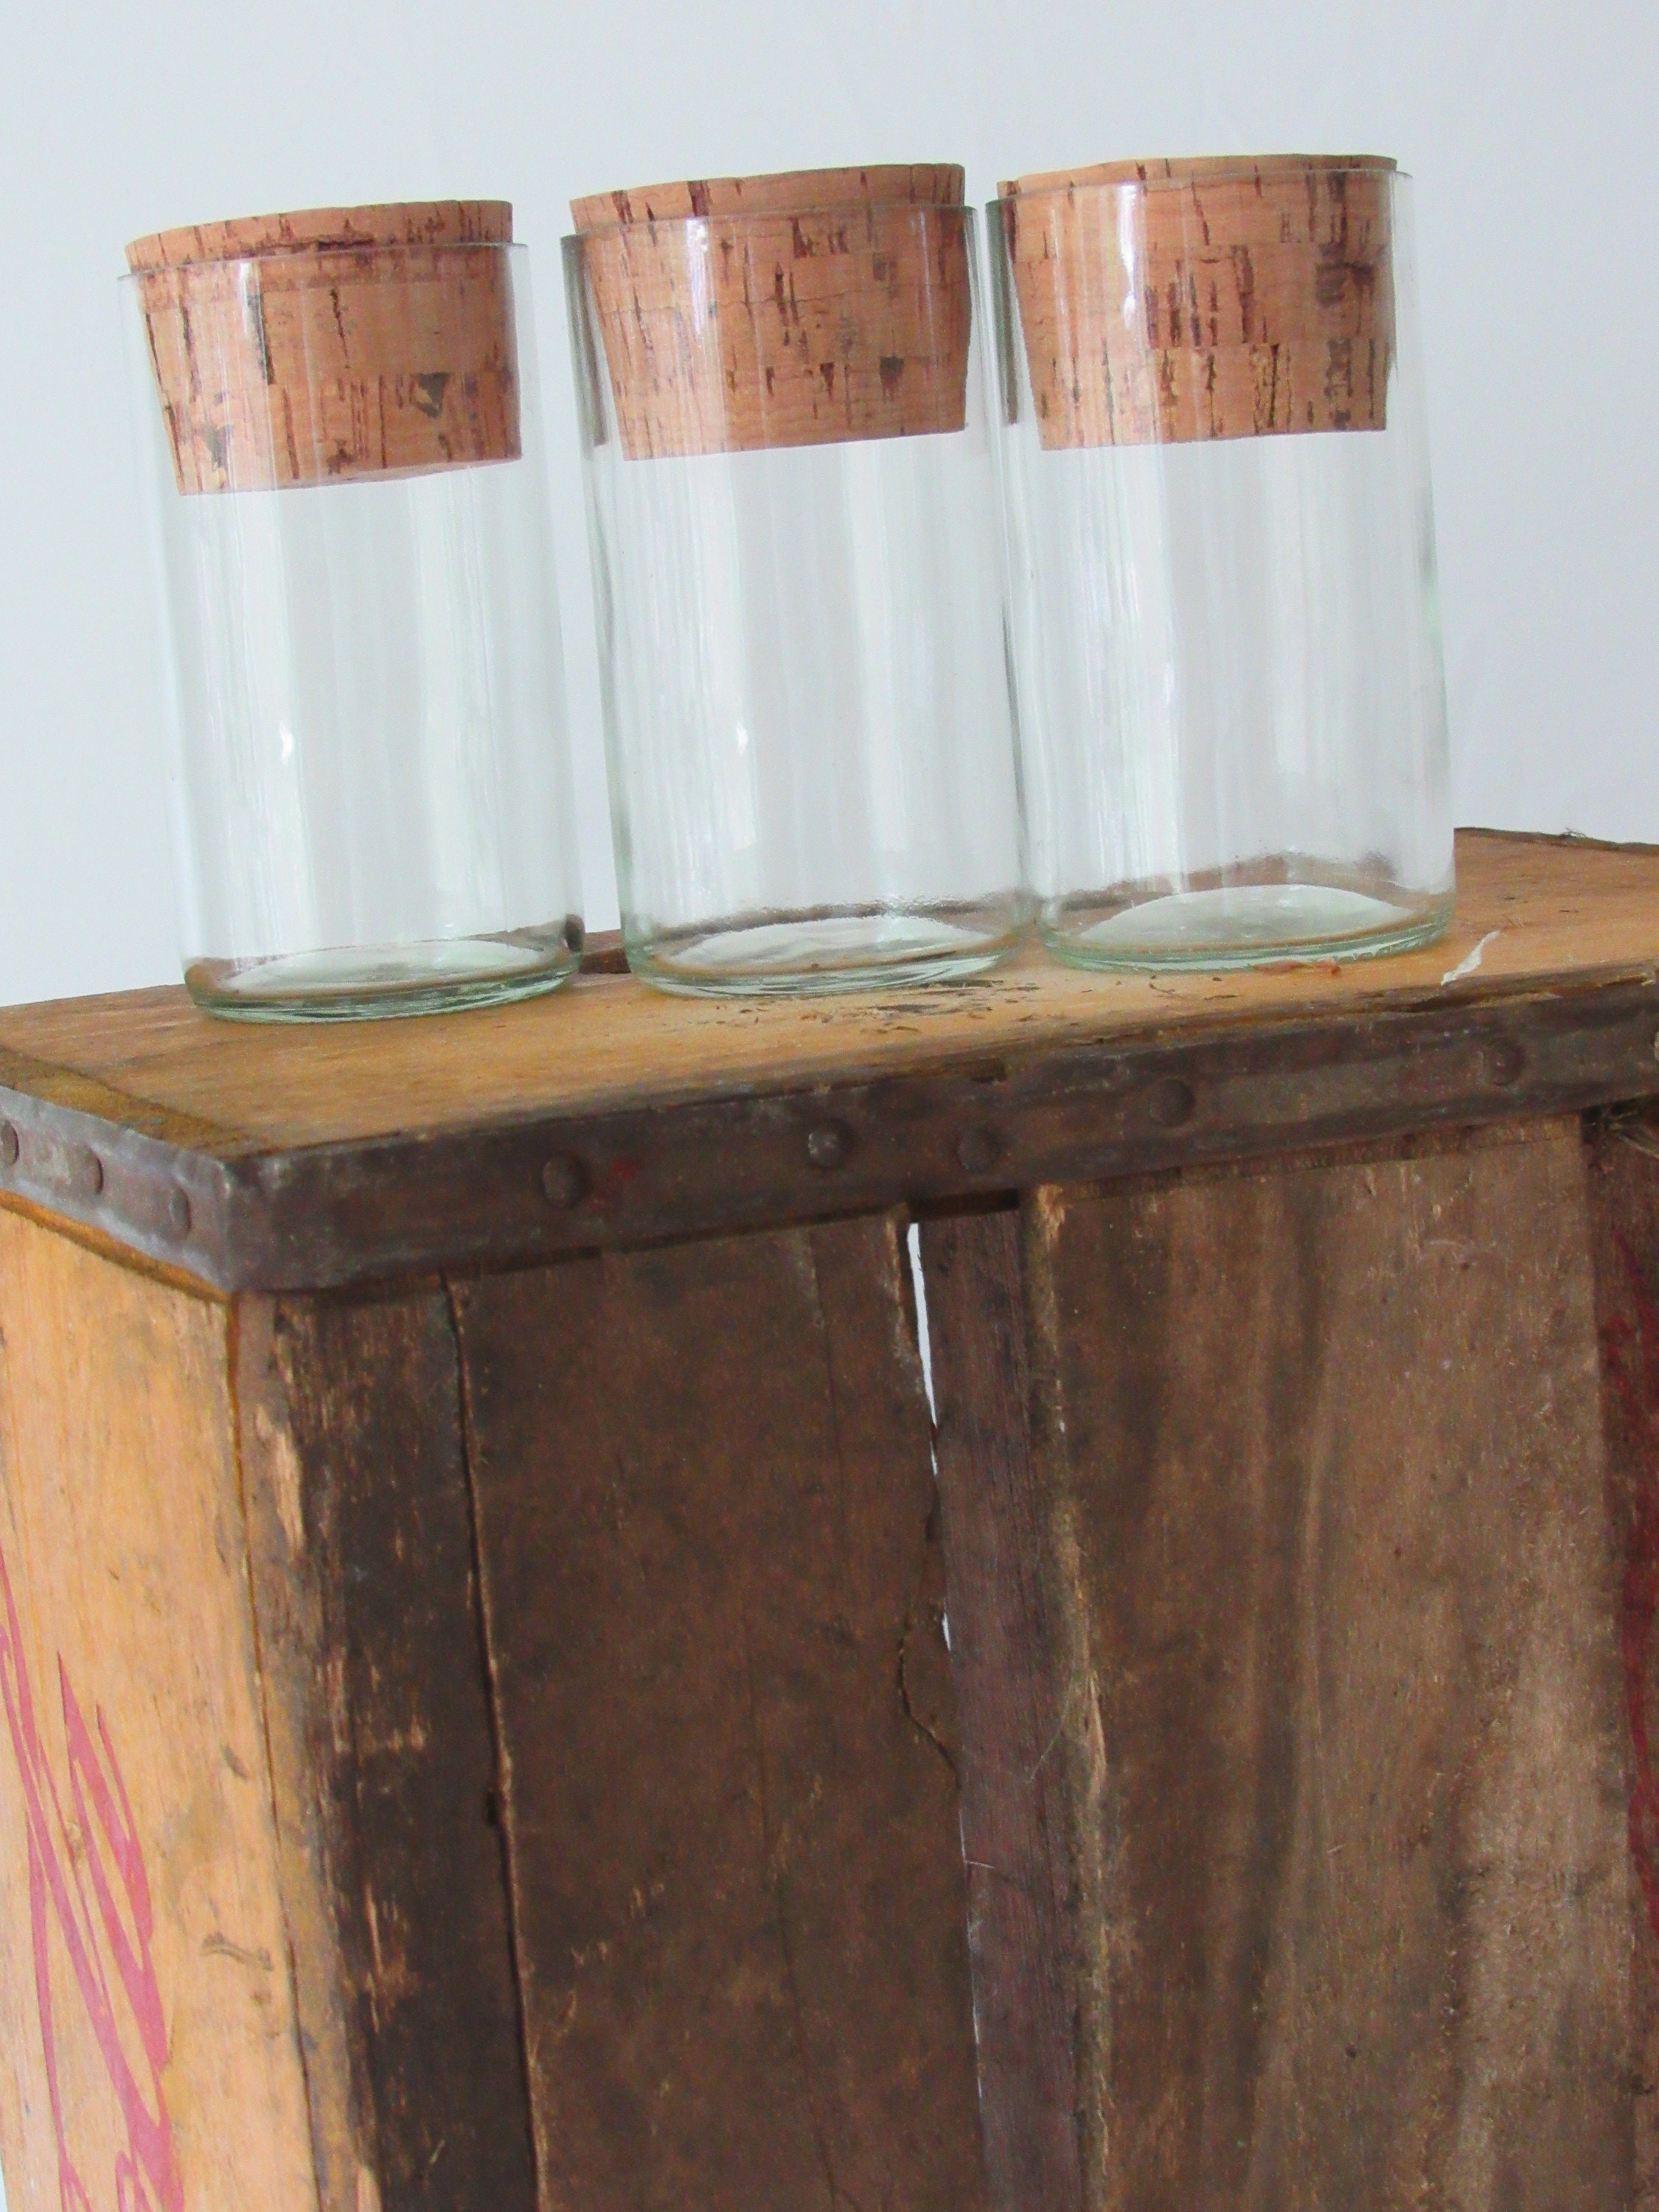 Small Upcycled Bottle Canister Set Of 3 With Natural Cork Top Etsy